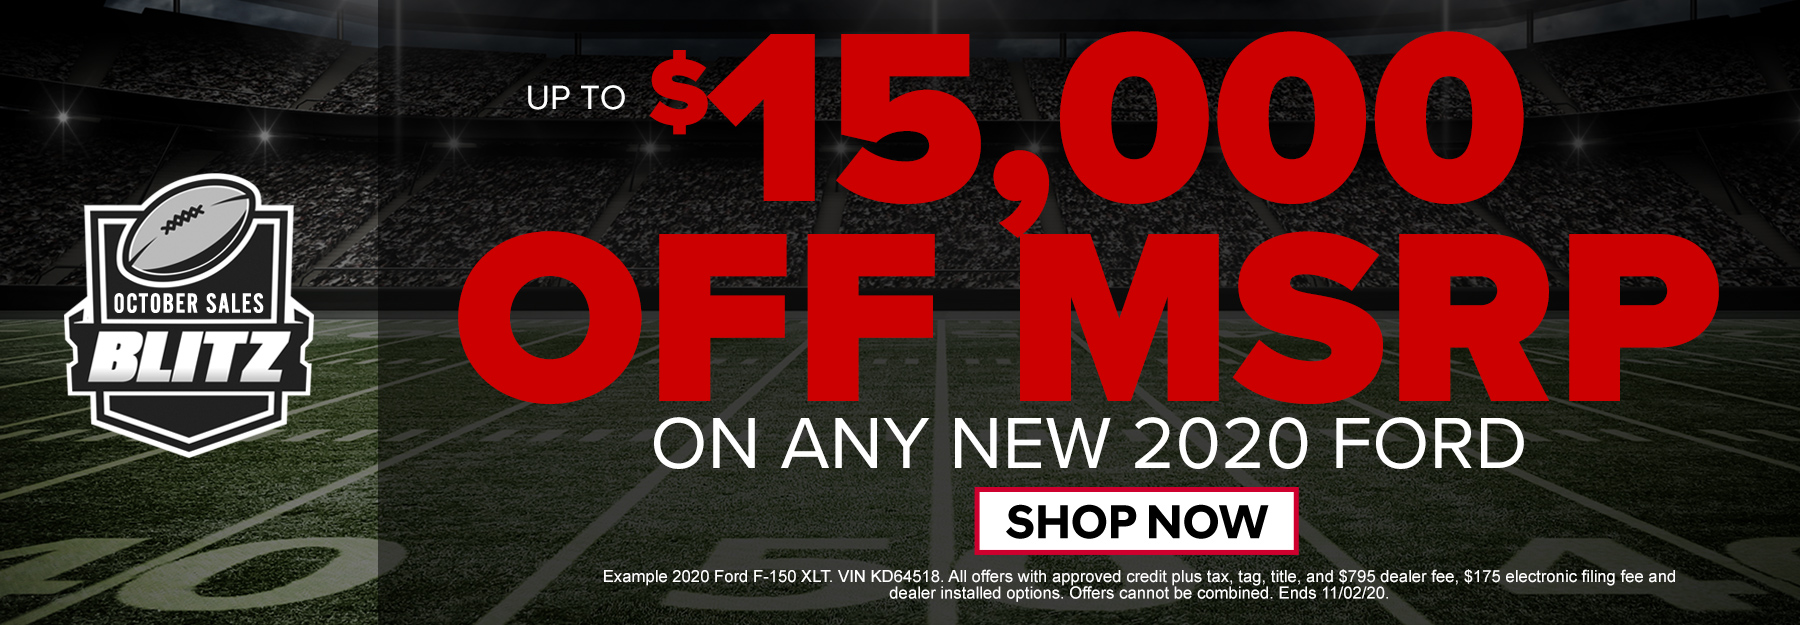 Up to $15,000 off MSRP